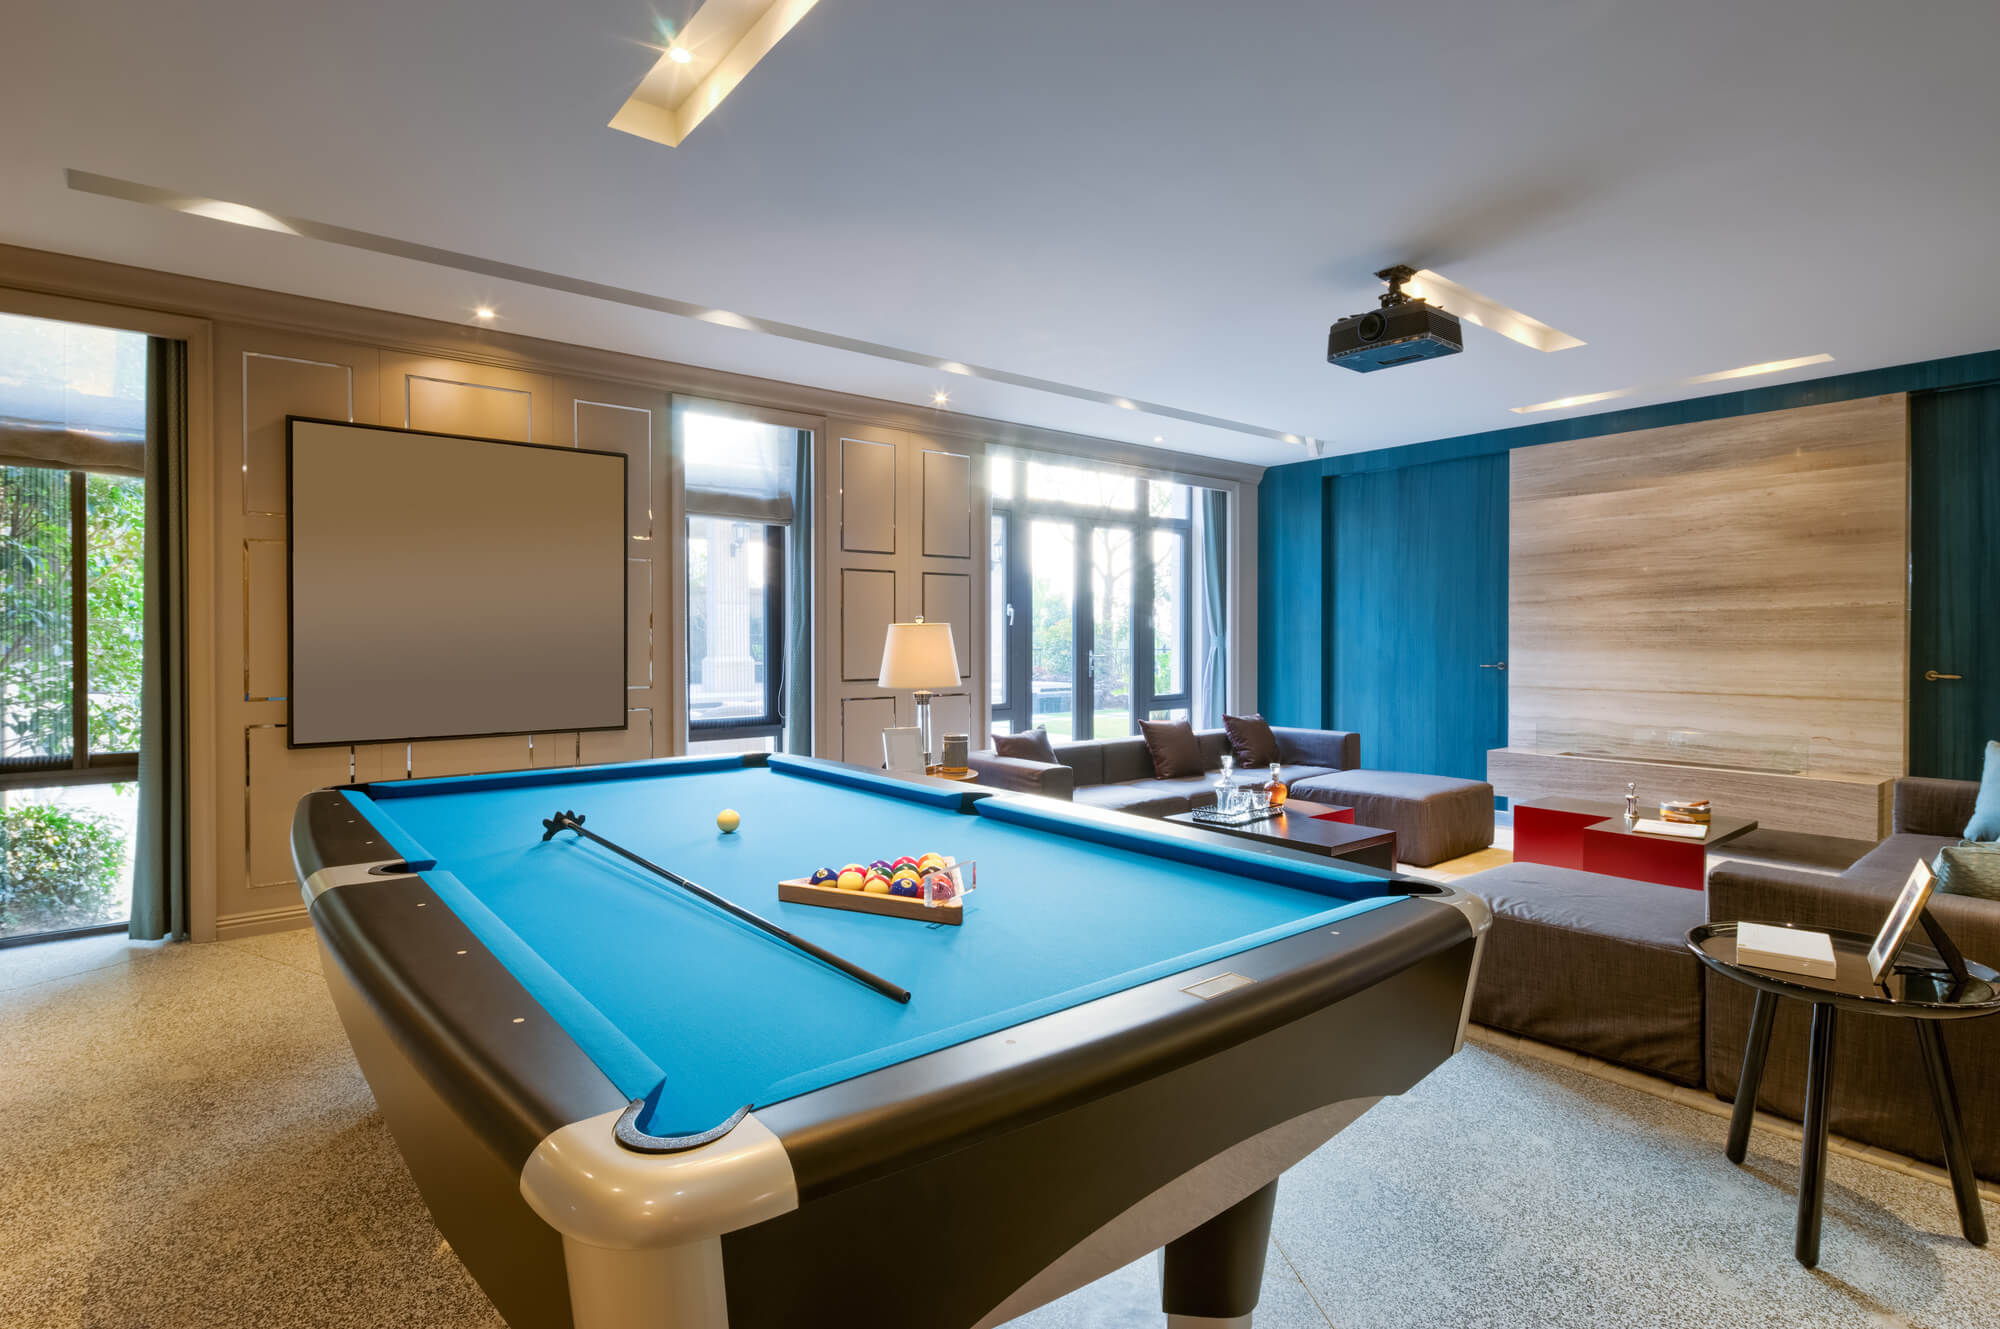 Top 7 Must-Haves For The Ultimate Man Cave